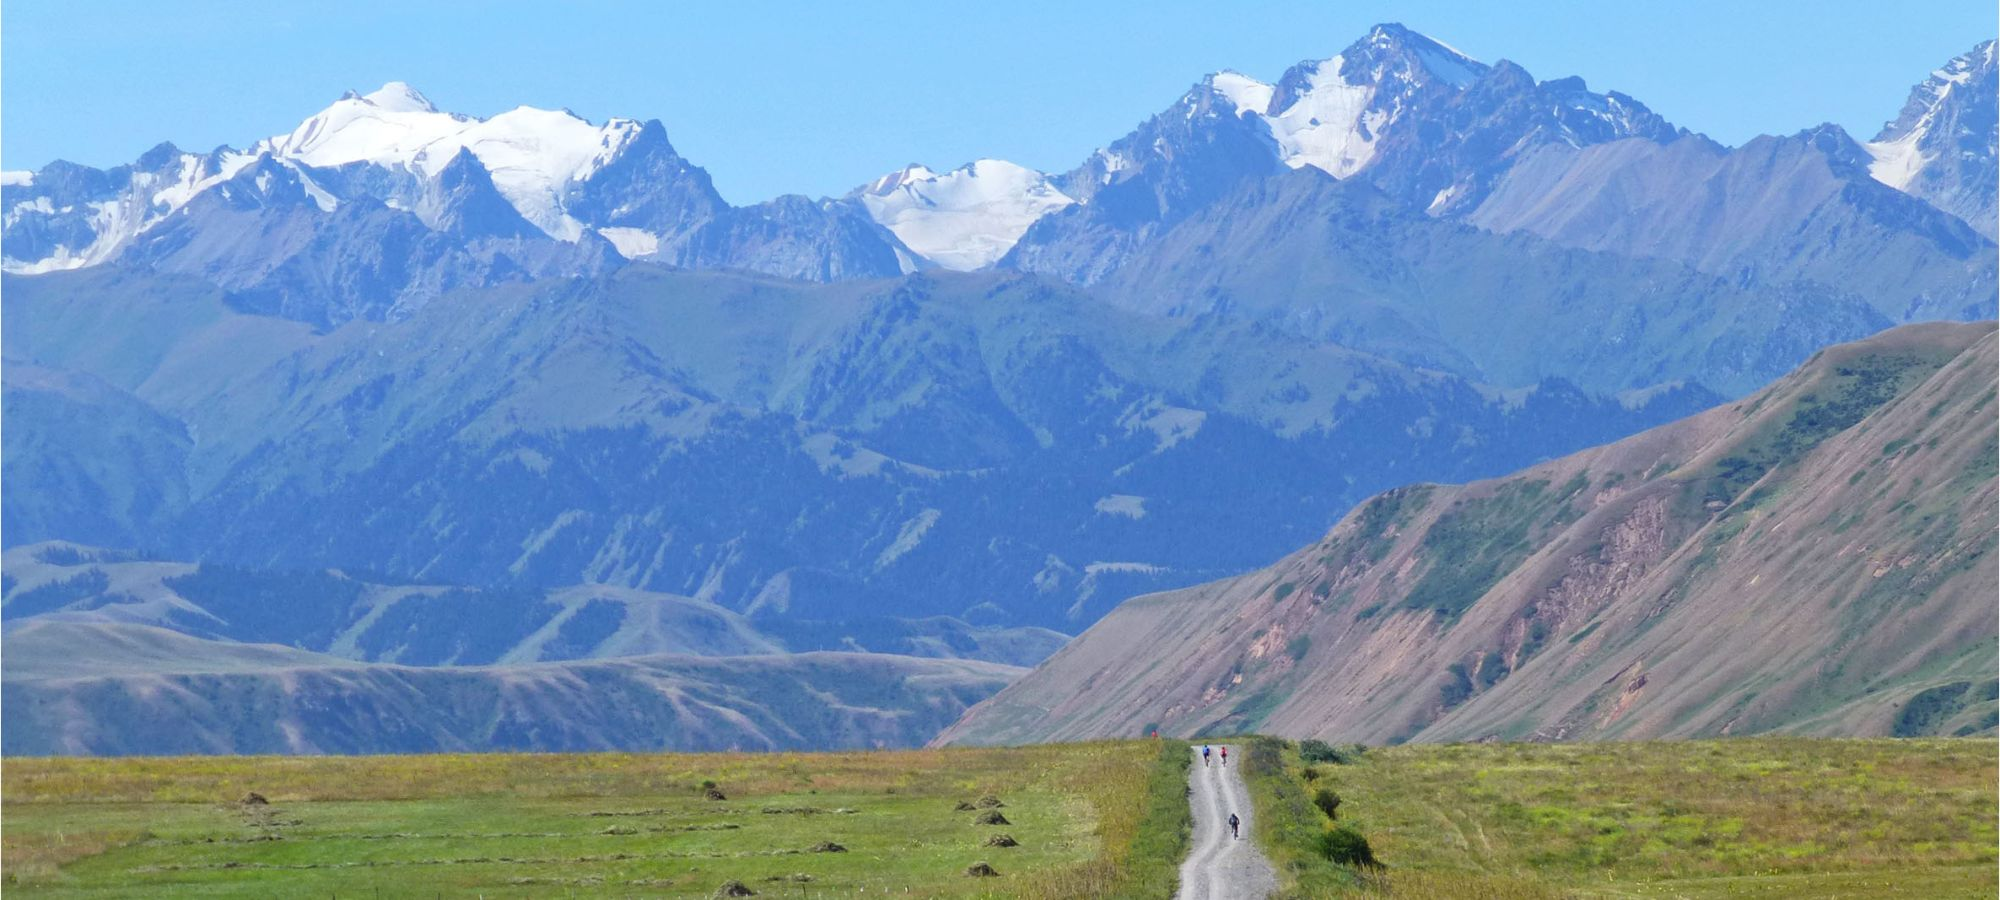 Photos from our Kyrgyzstan - The Shepherd's Way Cycling Holiday